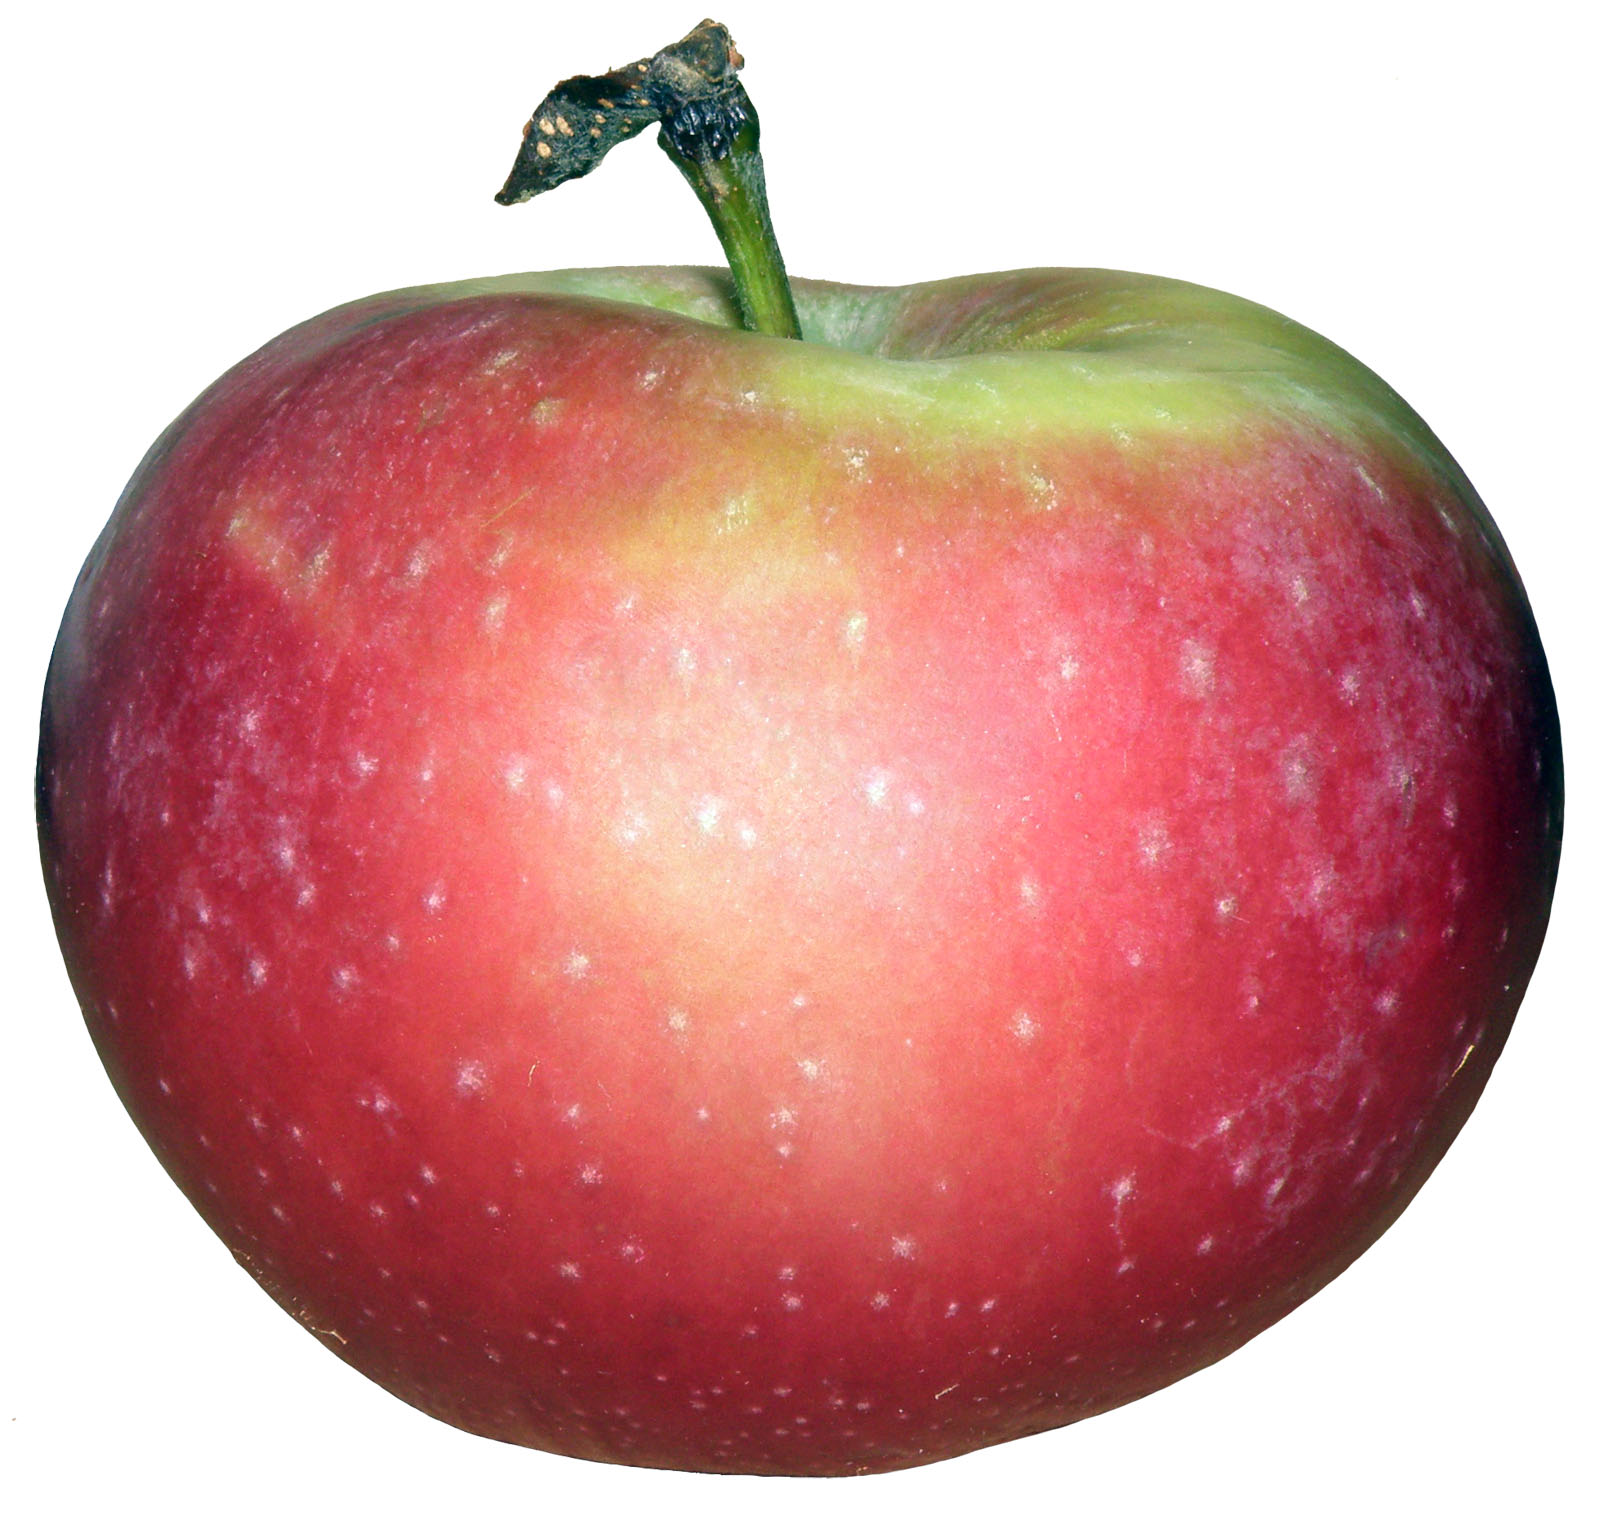 Description POL apple.jpg